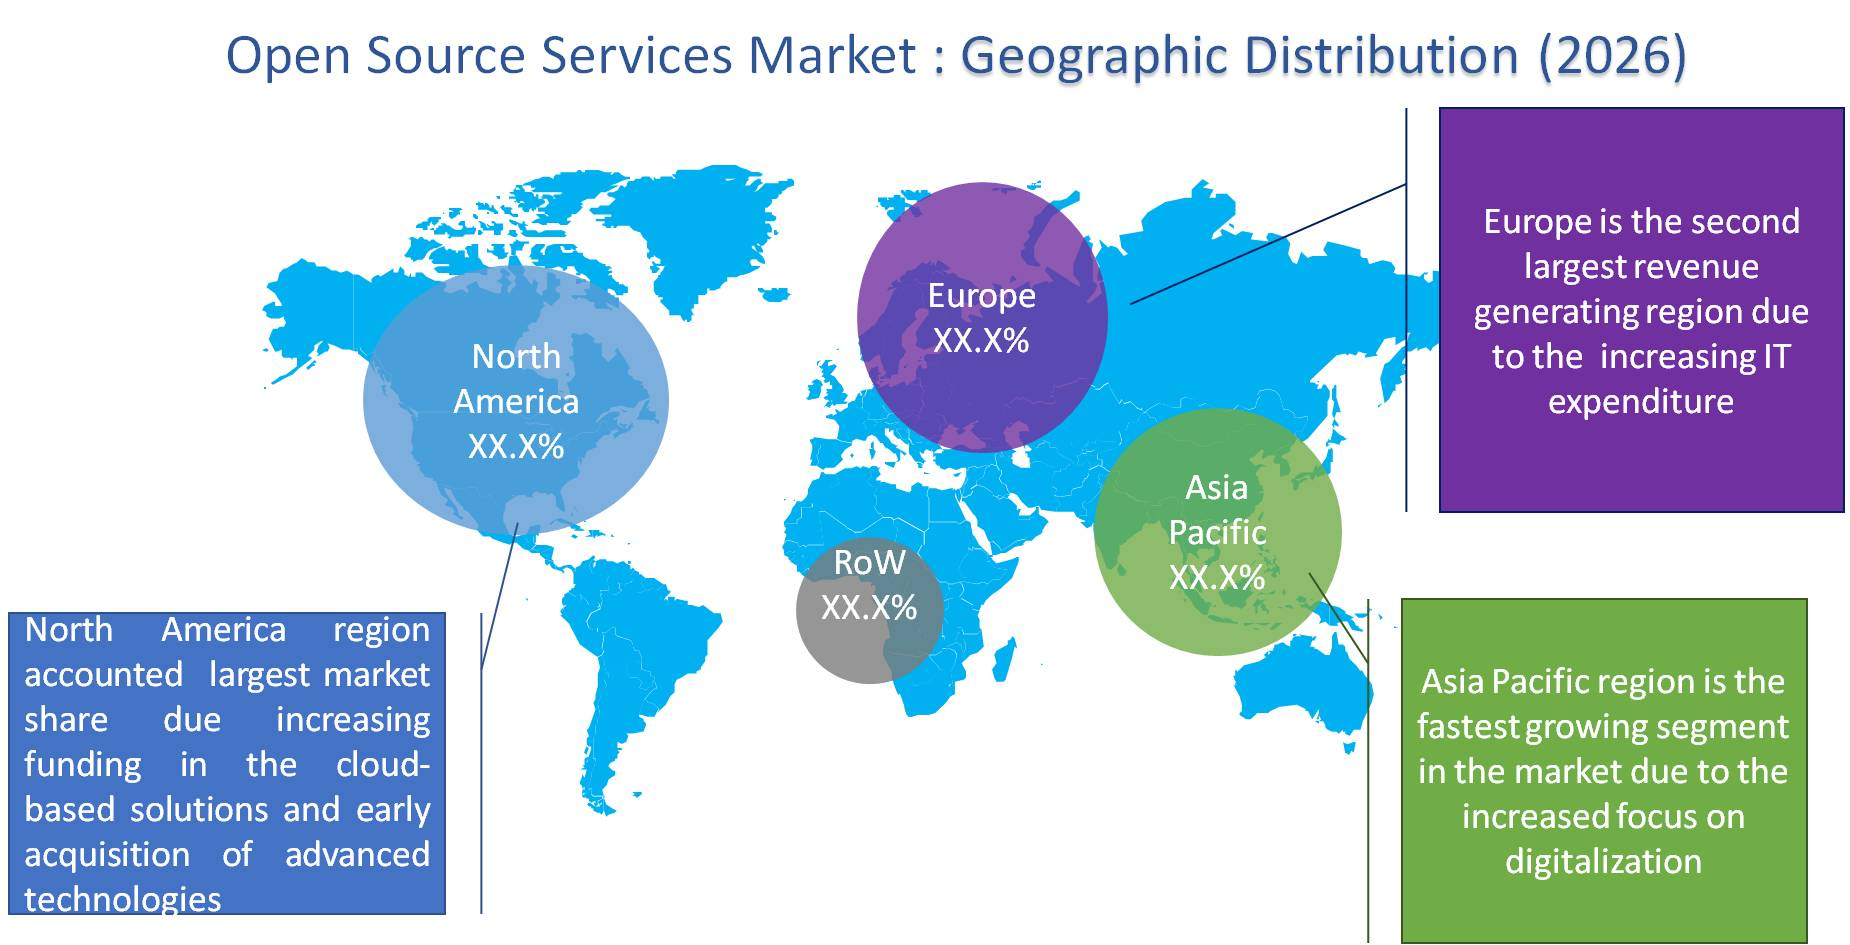 Global Open Source Services Market